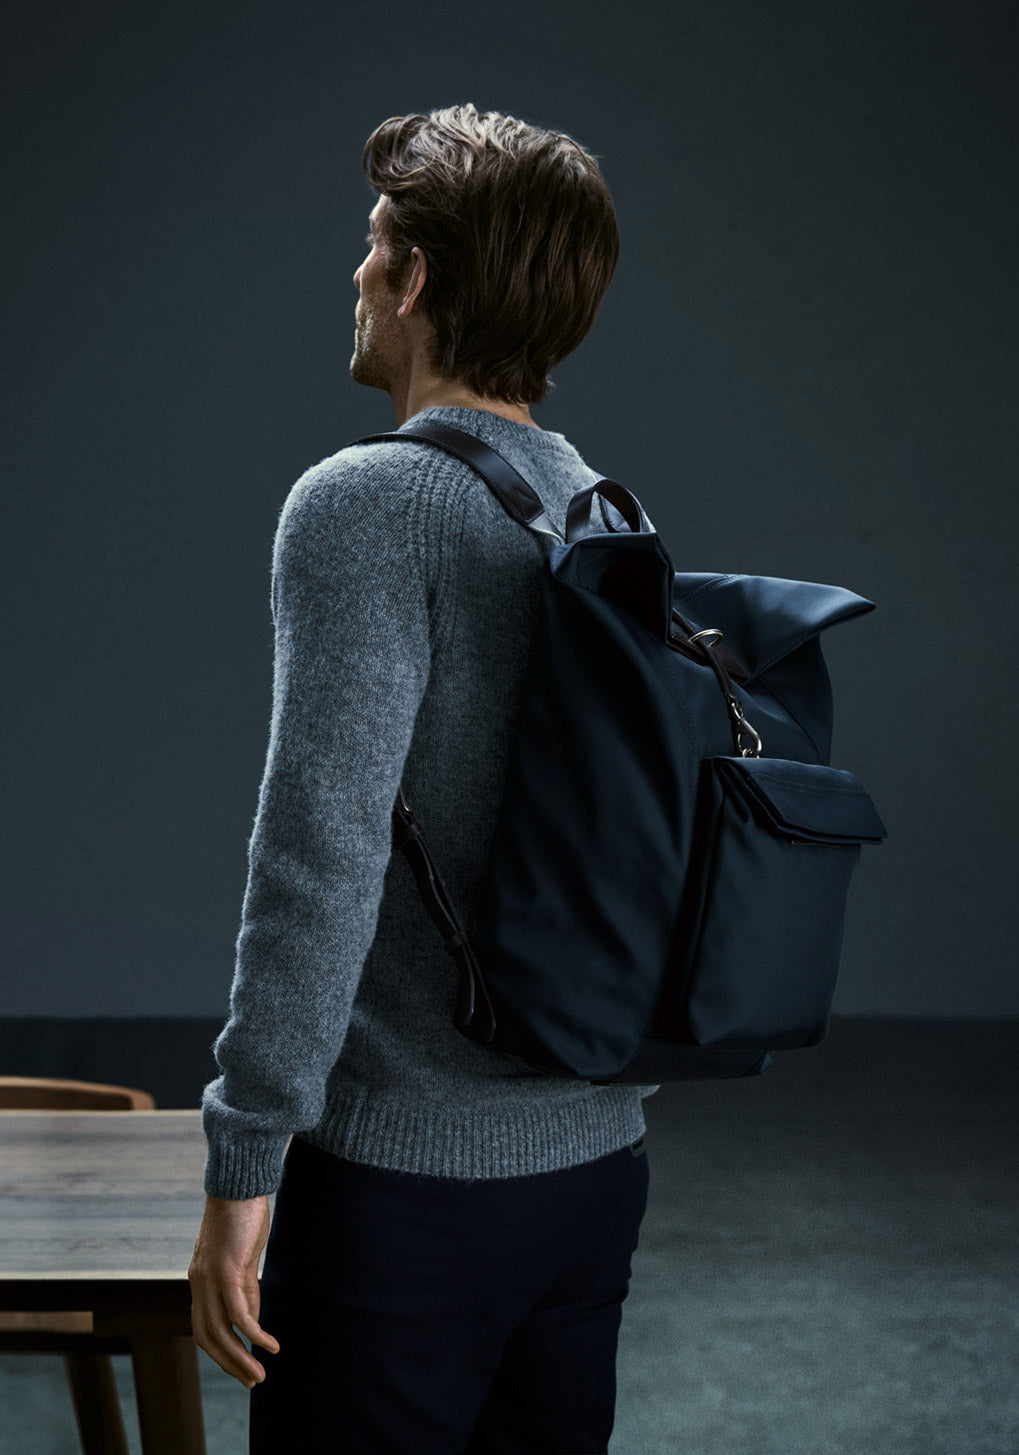 M/S Drop bag - Concrete/Cuoio collection 2